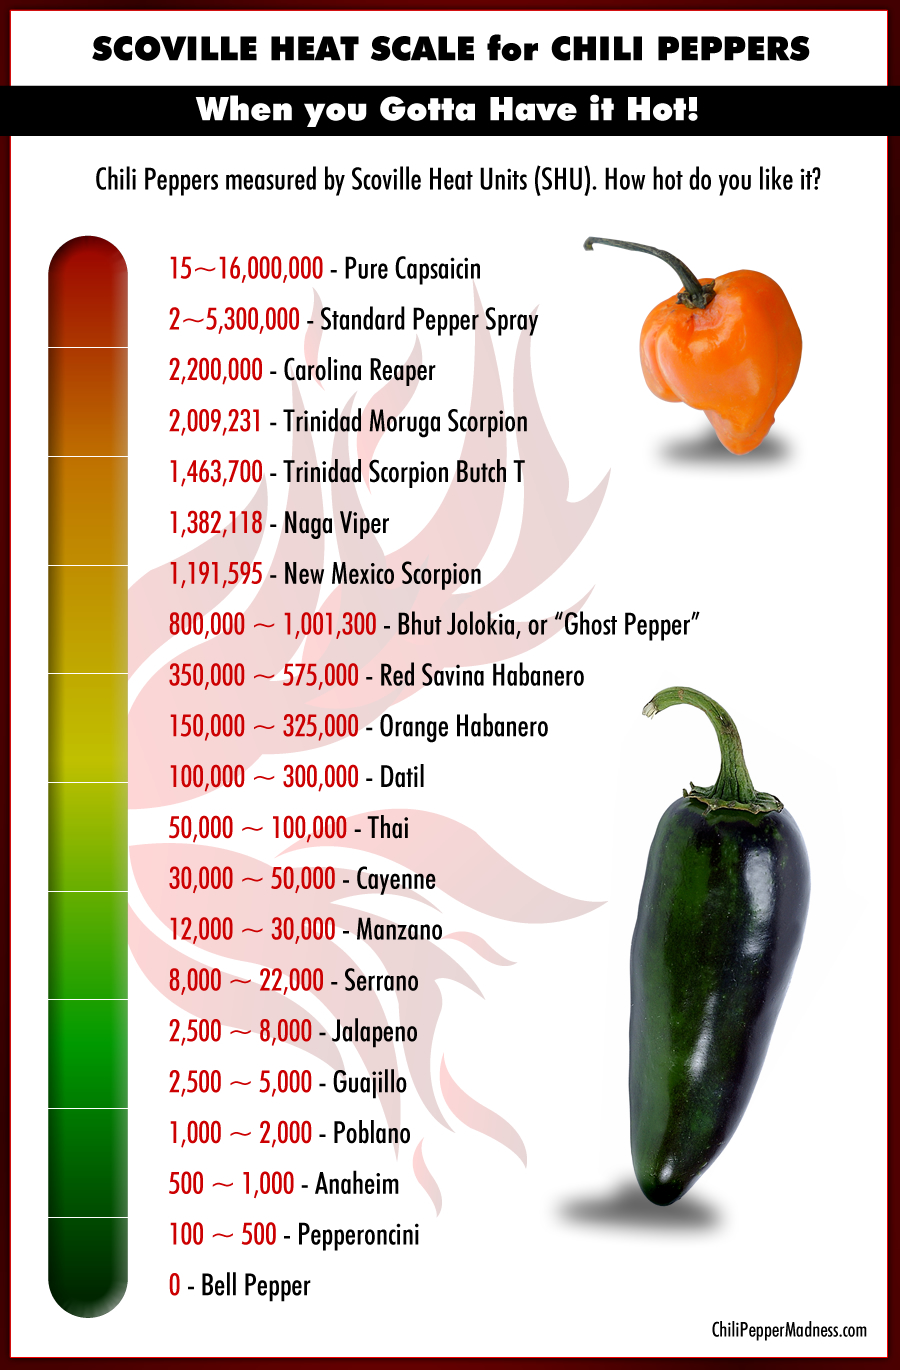 A List Of Chili Peppers From Hottest To Mildest As Measured On The Scoville Heat Unit Shu Scale